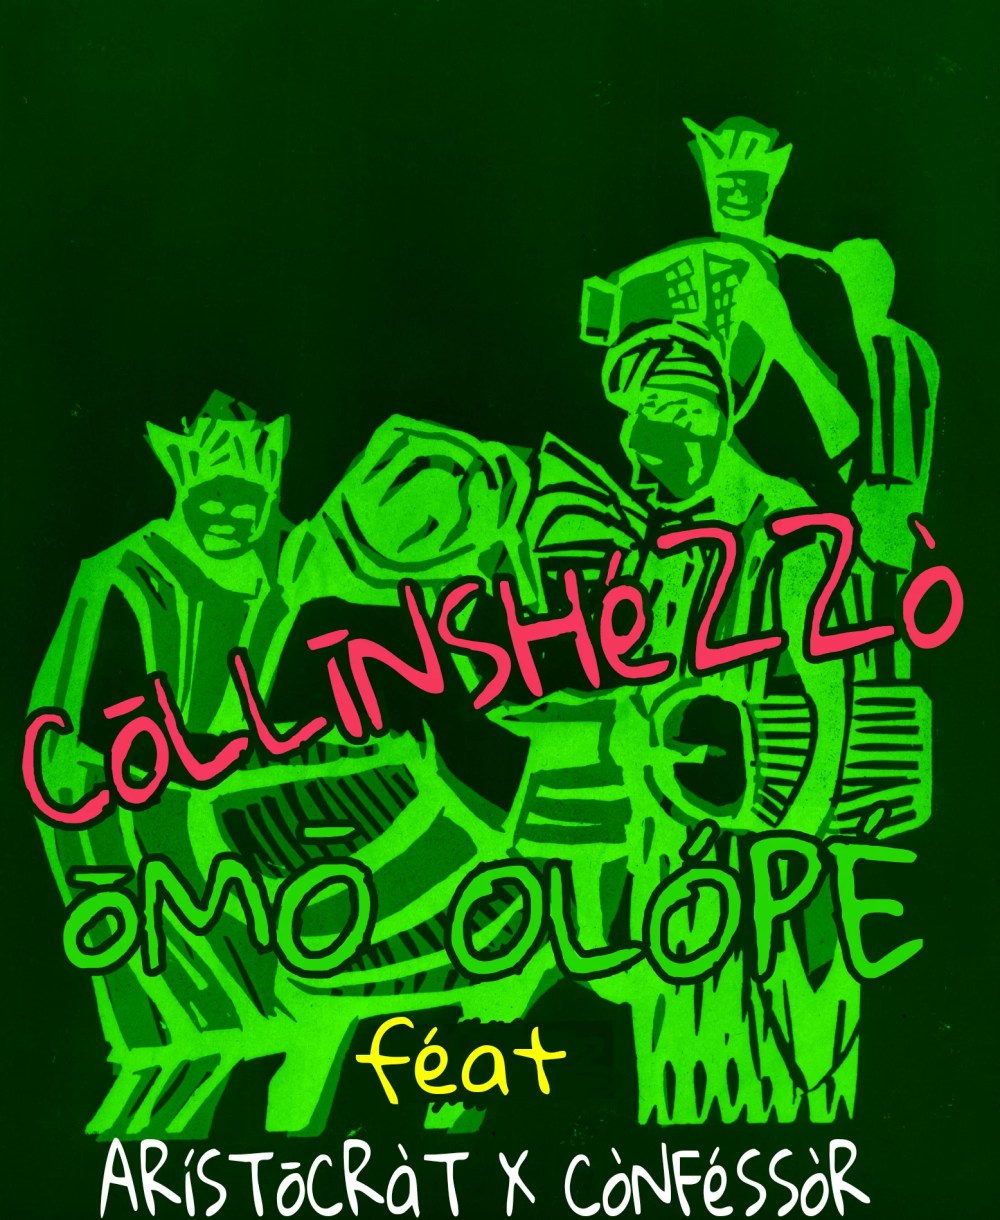 Collinshezzo -- Olope Ft The Aristocrat x Confessor Cover Art